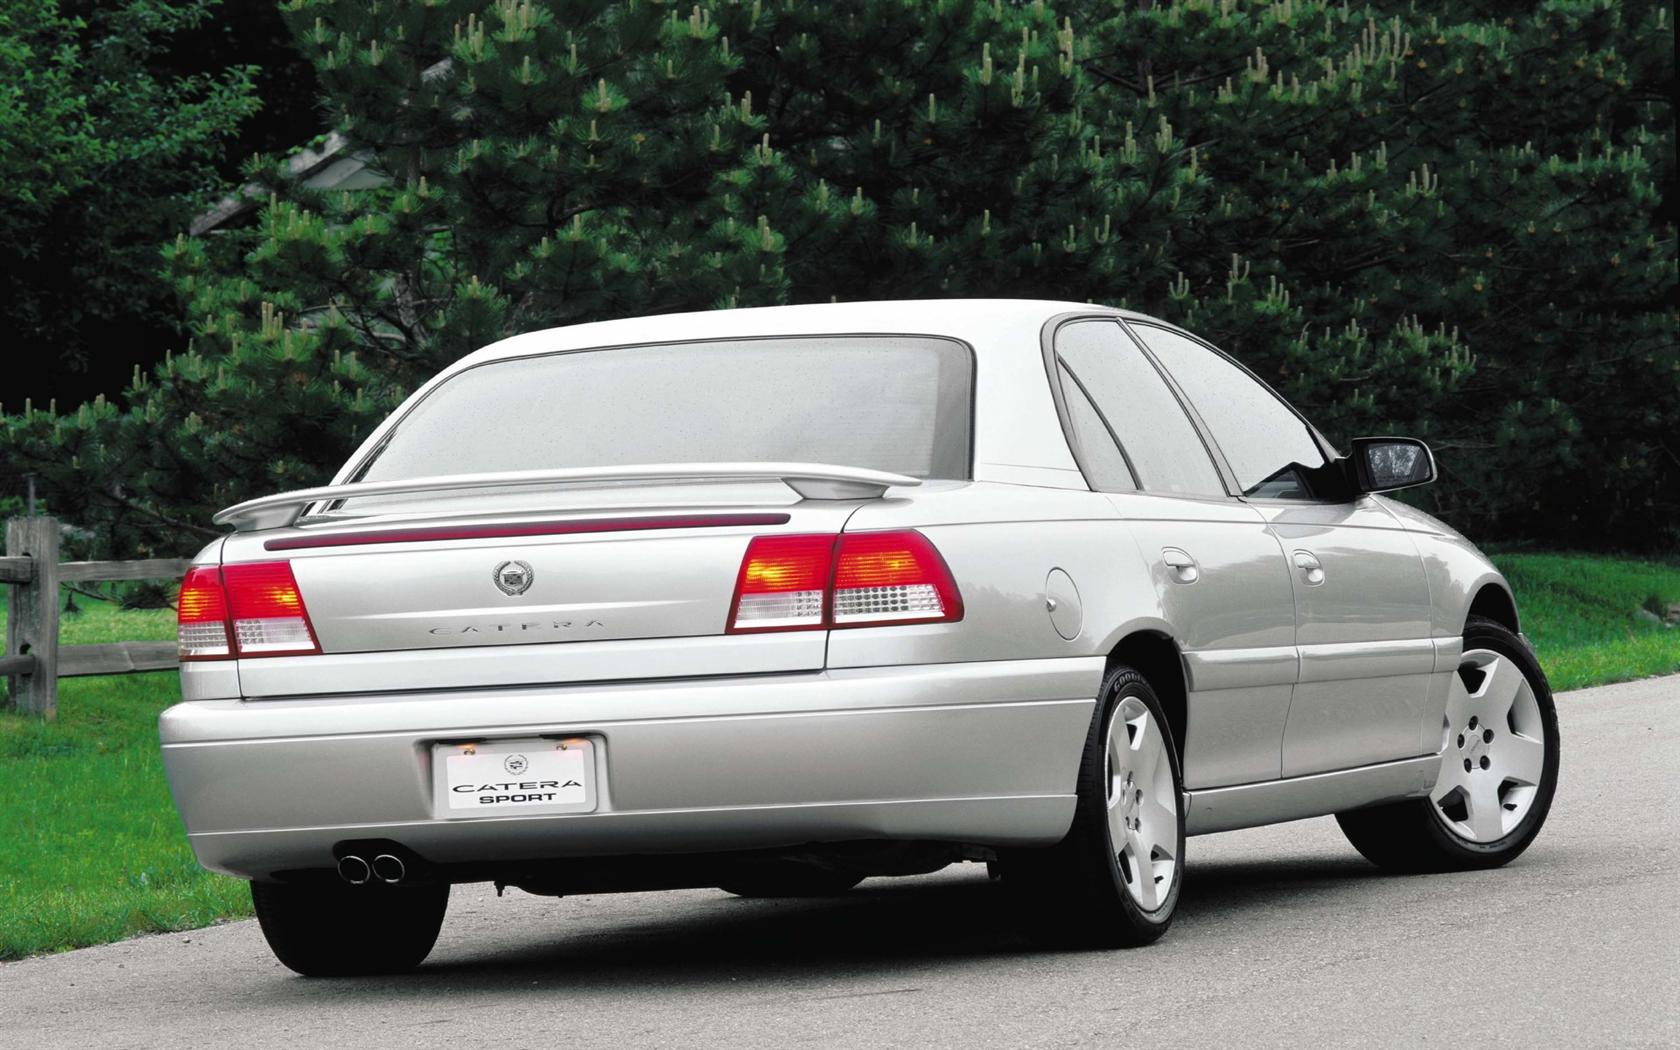 Between the demise of the allante which was never really competitive in its class and the introduction of catera in 1997 cadillac had only the seville to